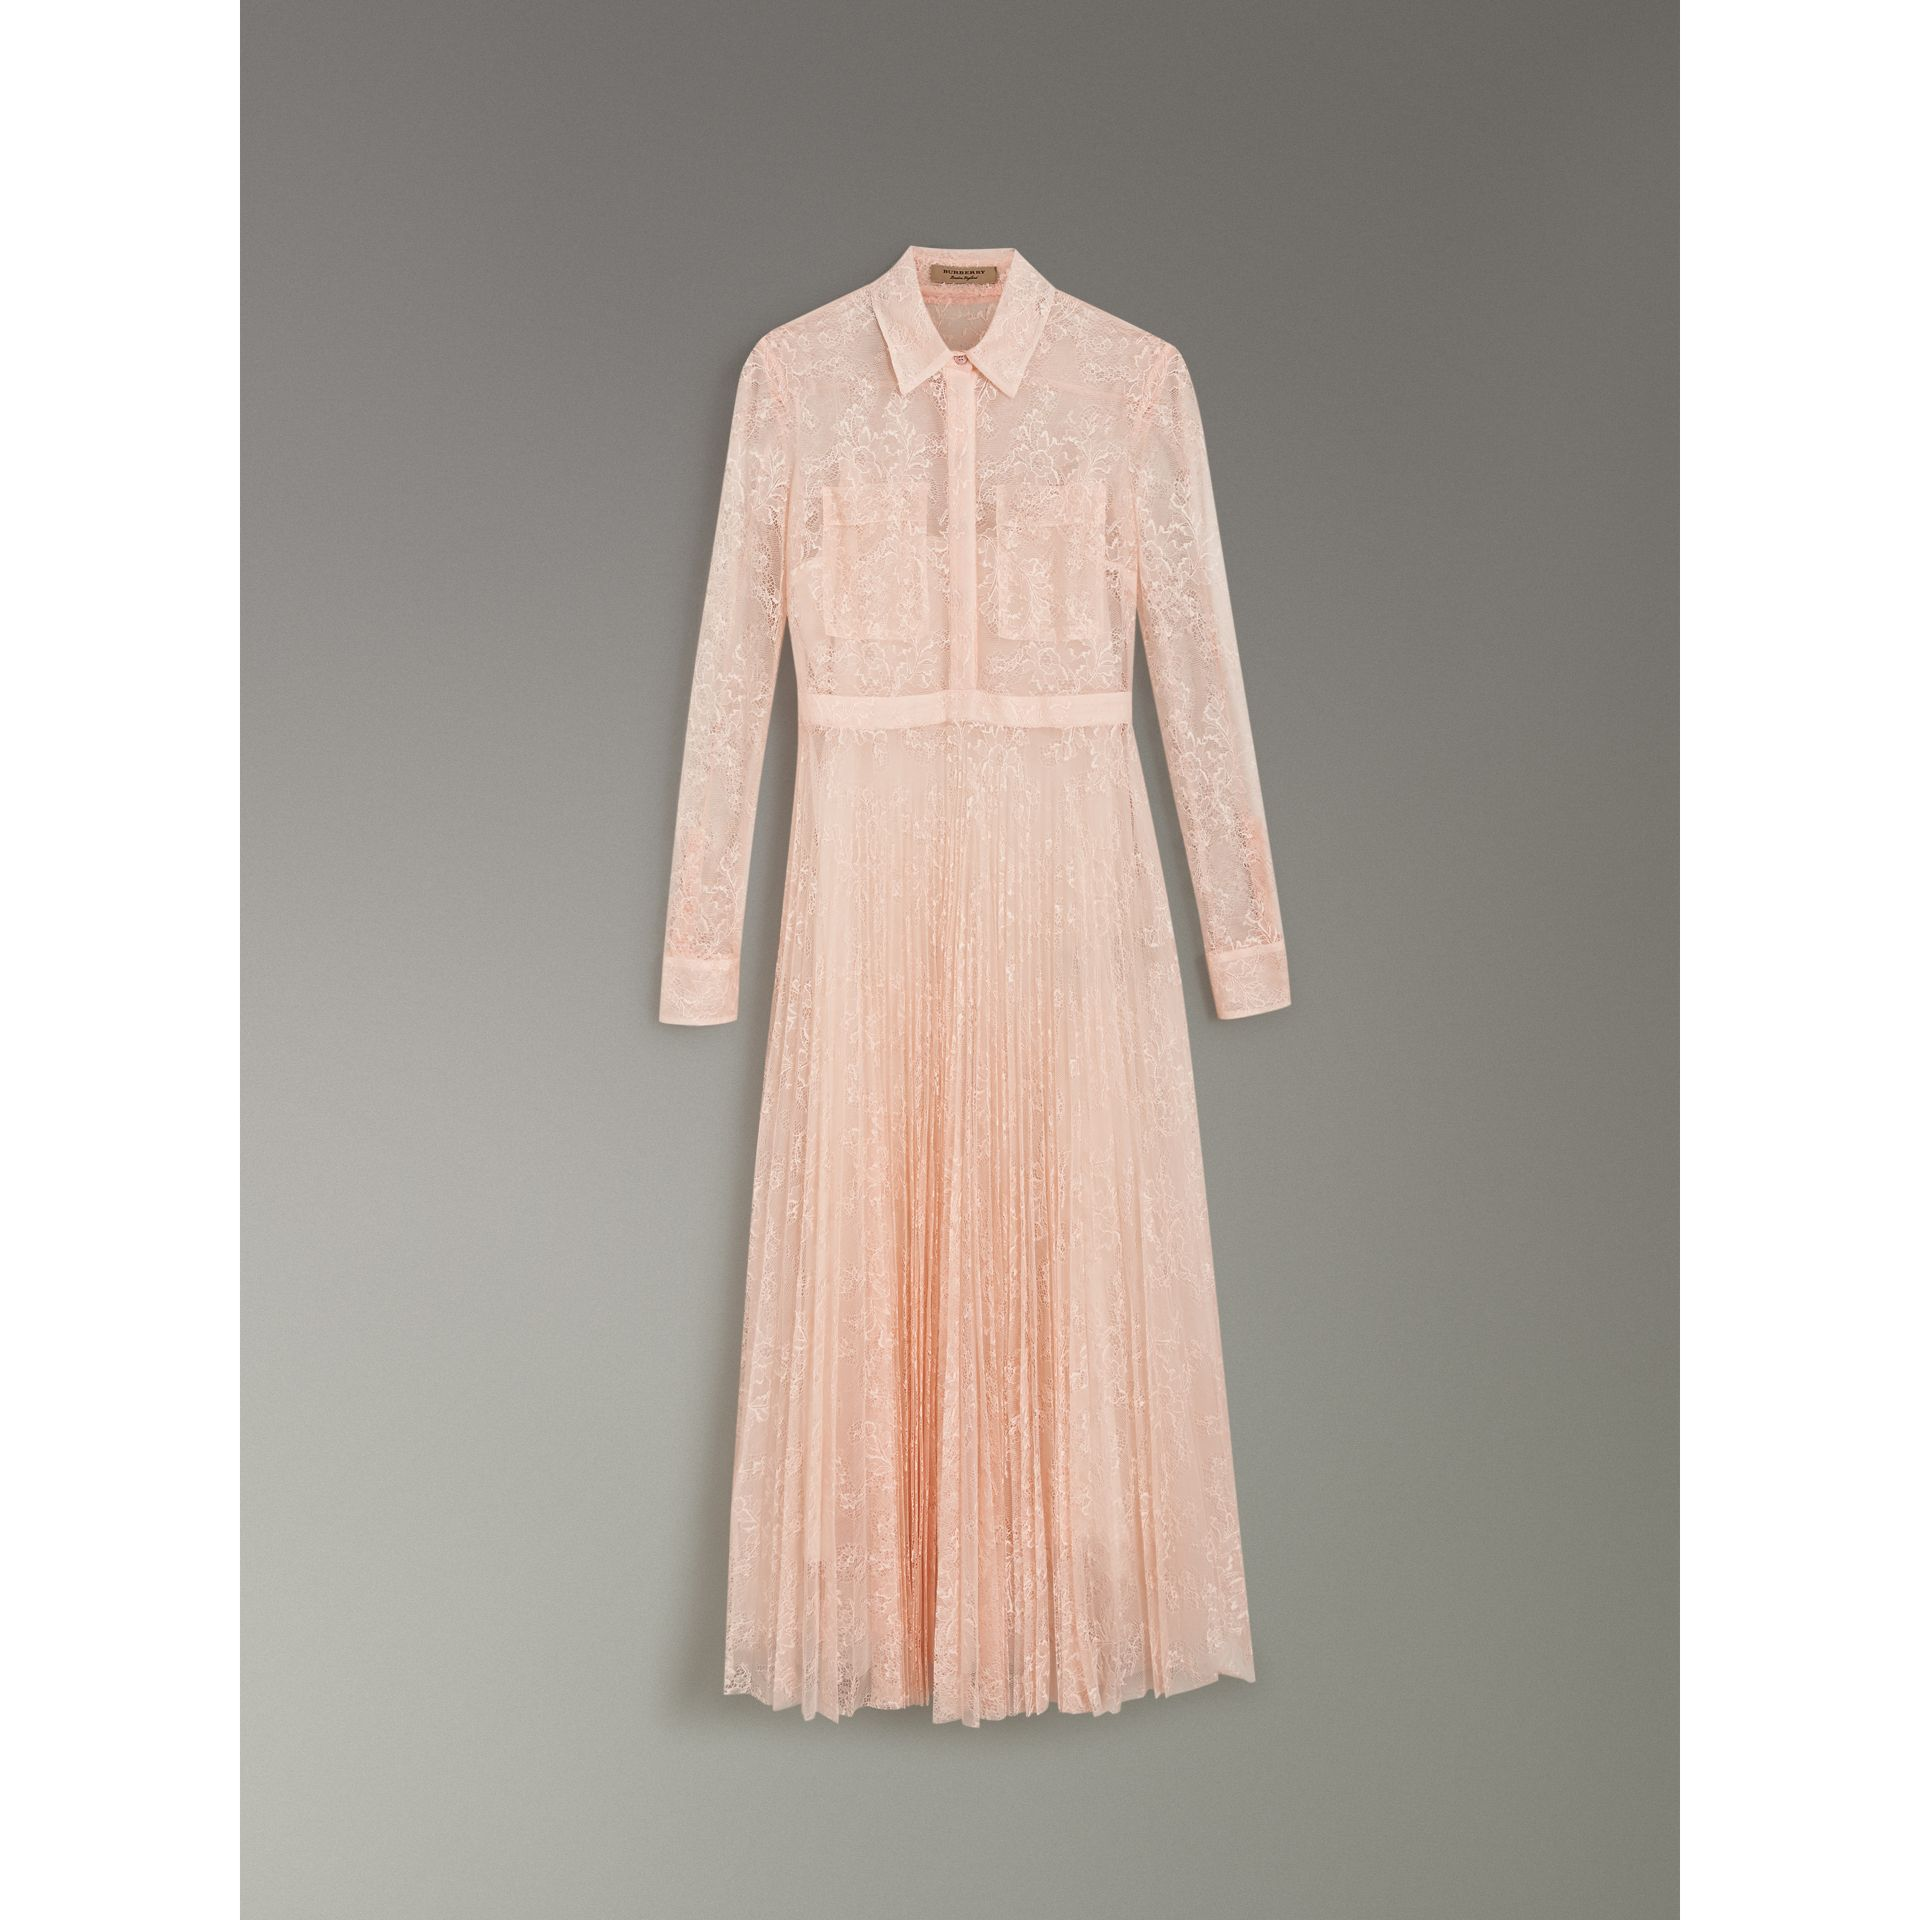 Pleated Lace Dress in Powder Pink - Women | Burberry - gallery image 3